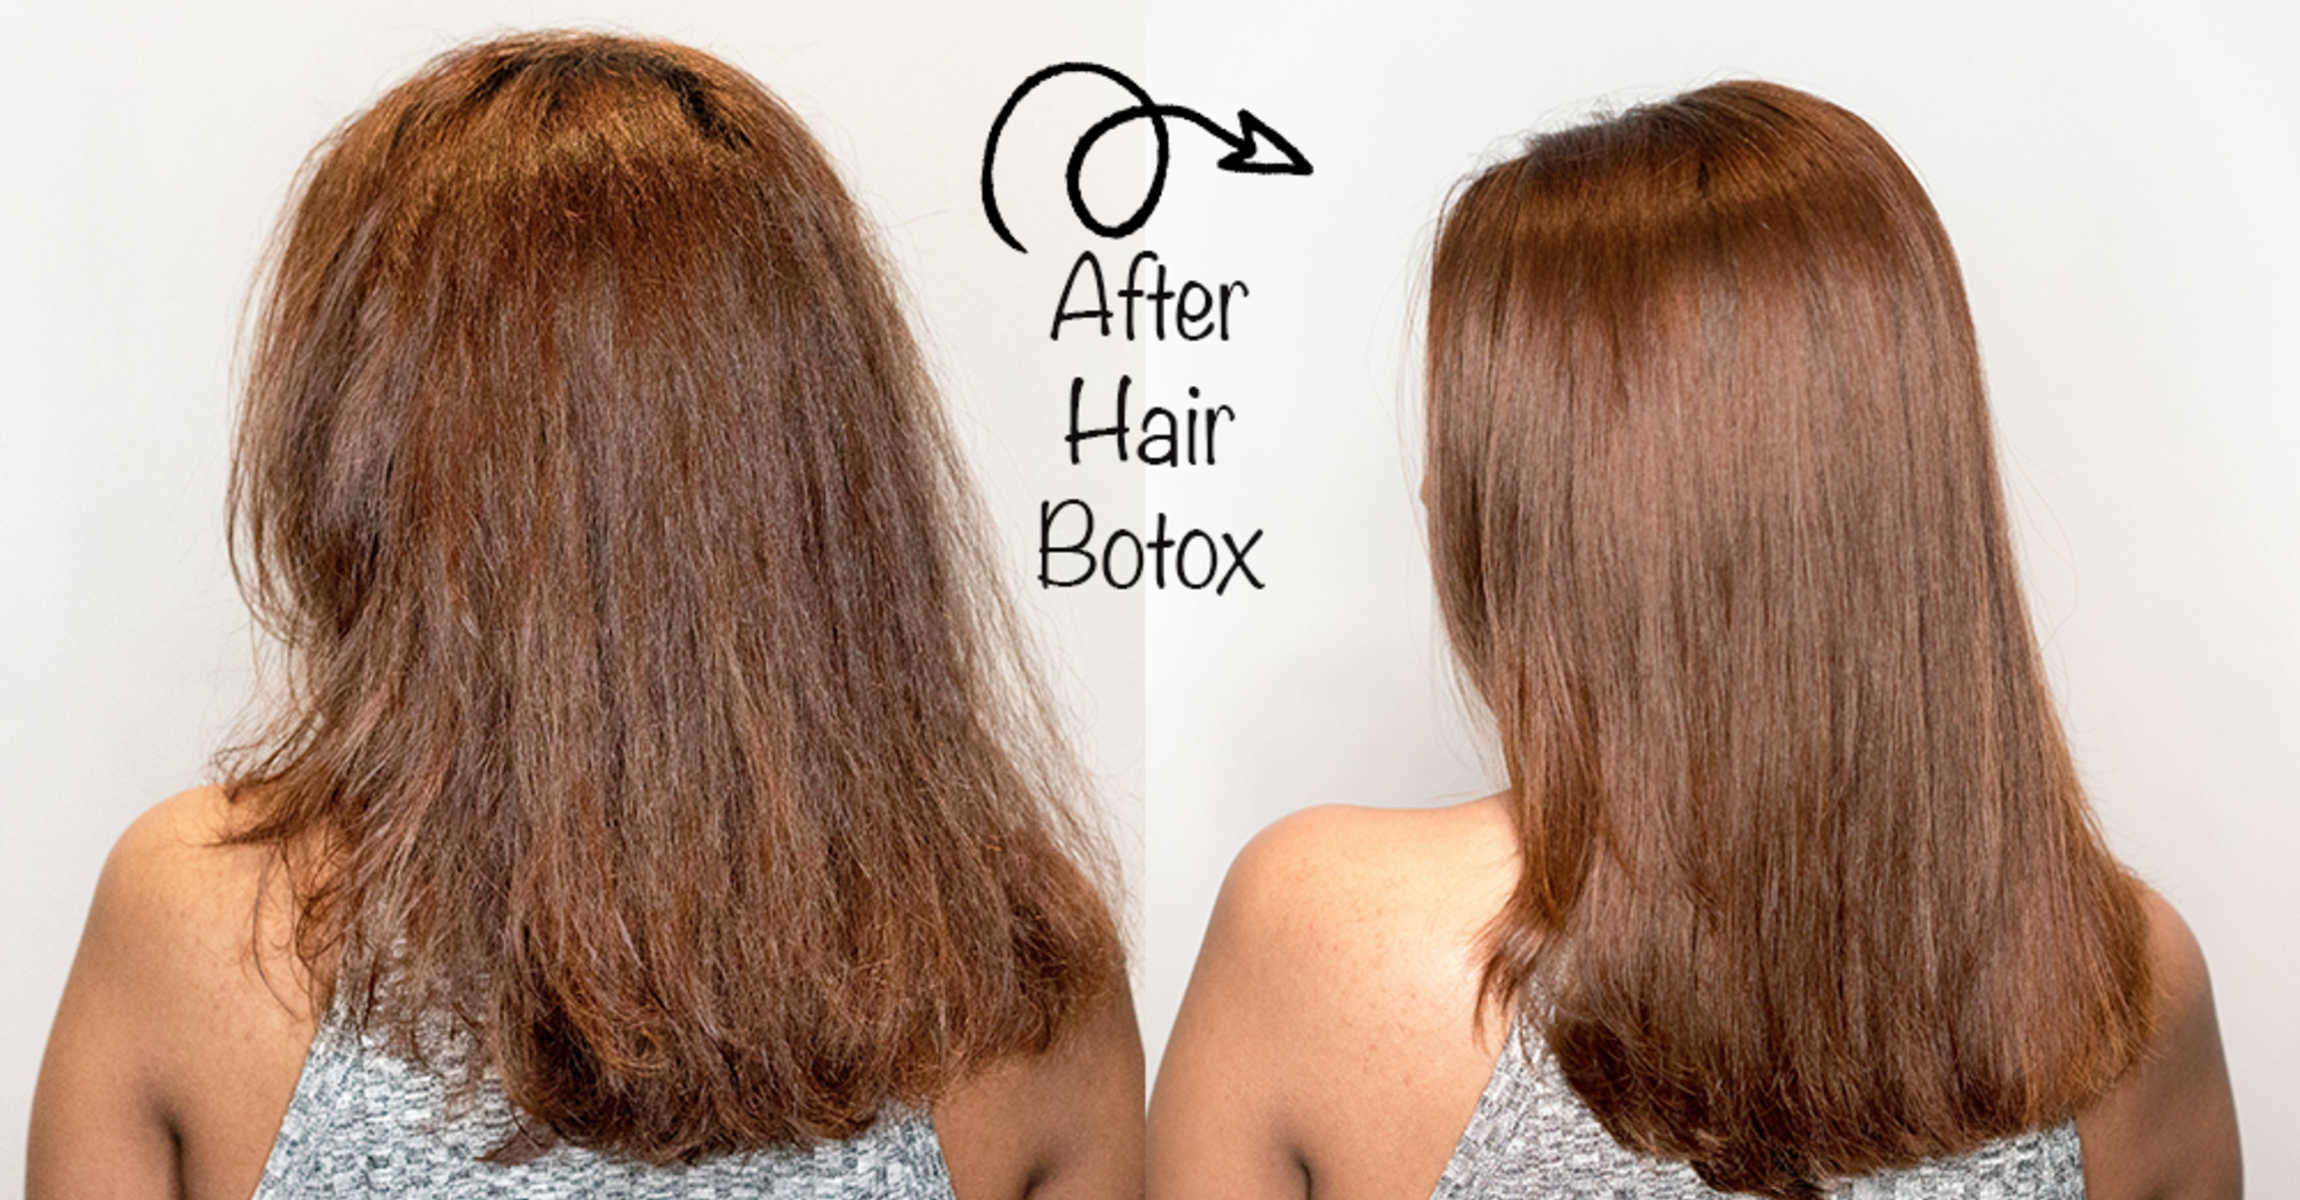 Before and After Premium Hair Botox at Chez Vous Hair Salon